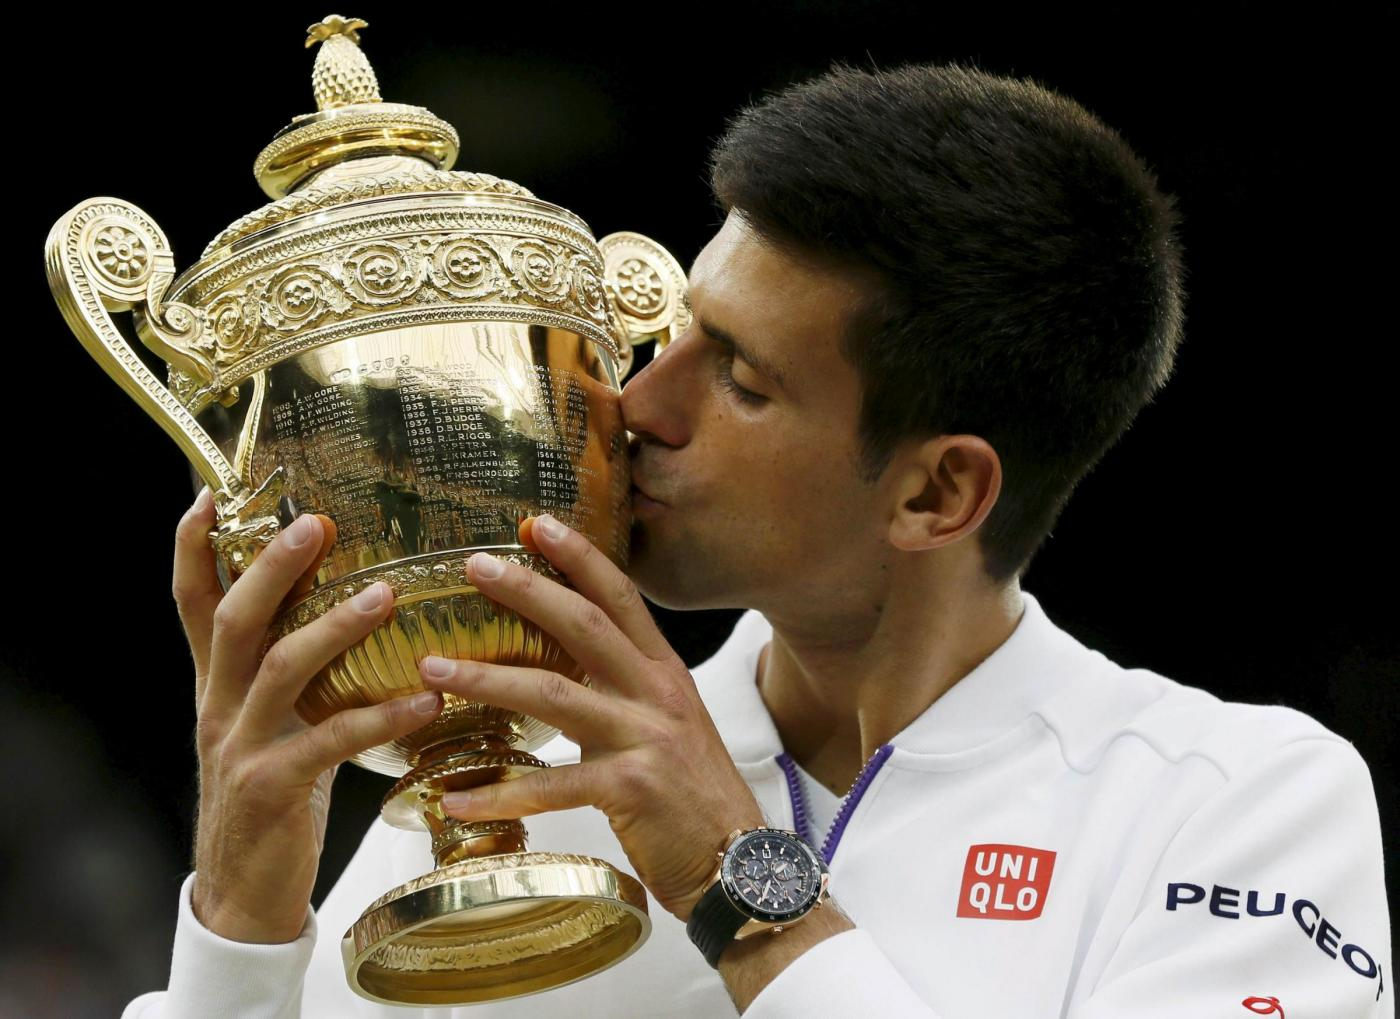 Wimbledon 2015: Nole Djokovic e Serena Williams campioni